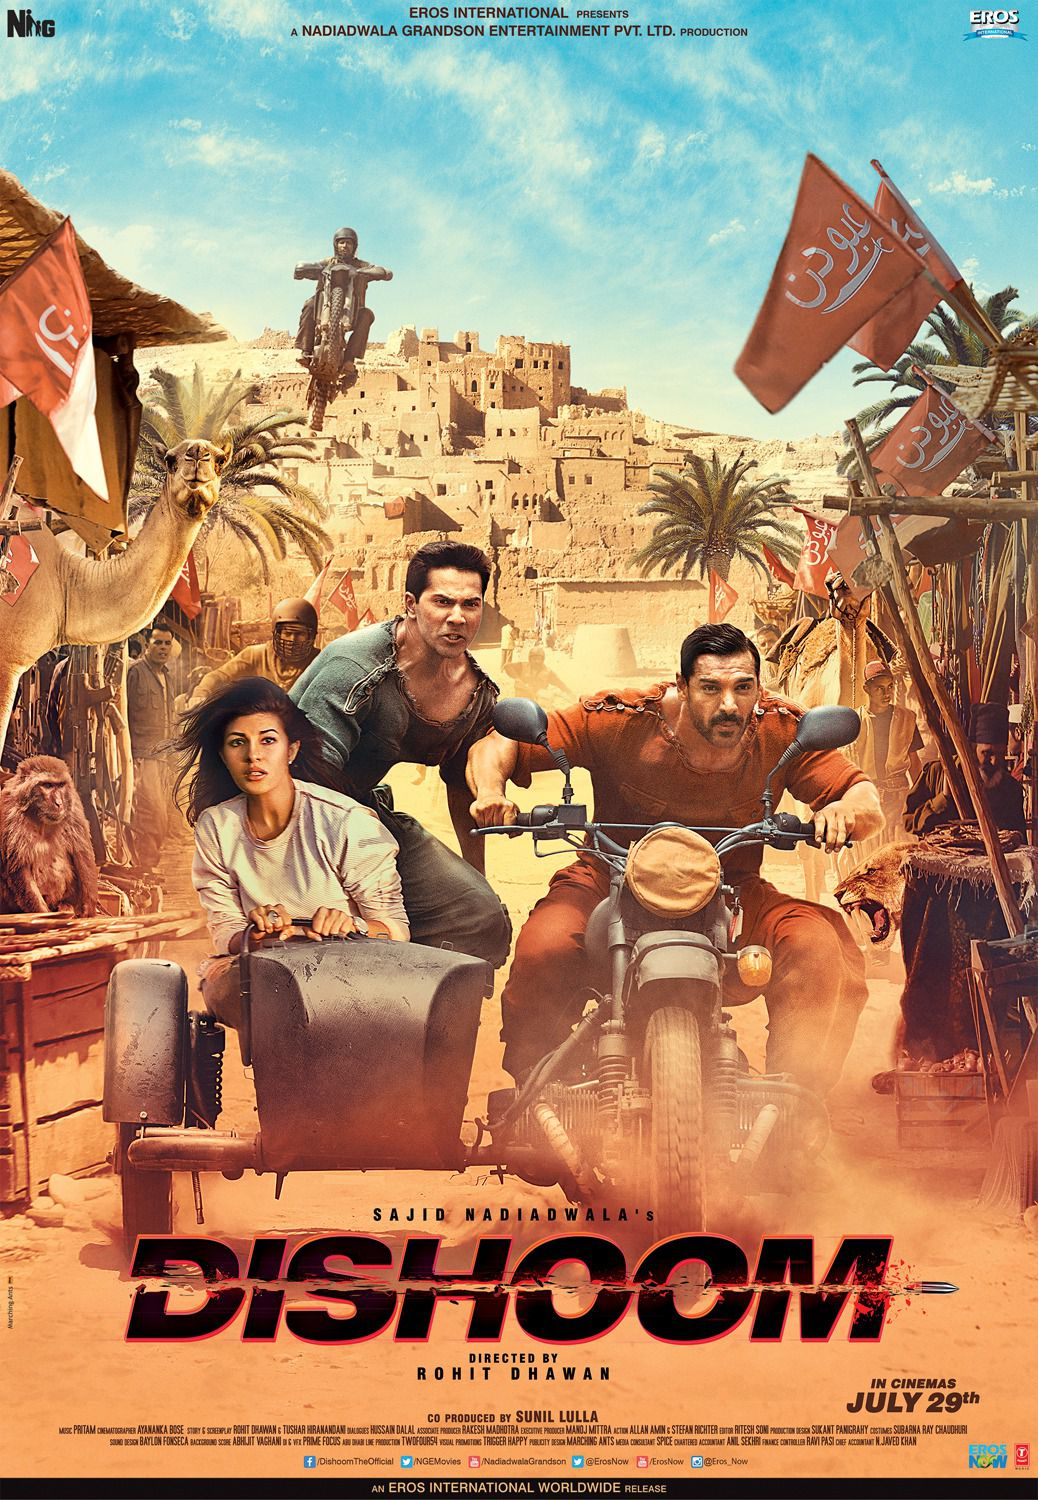 Dishoom - film poster